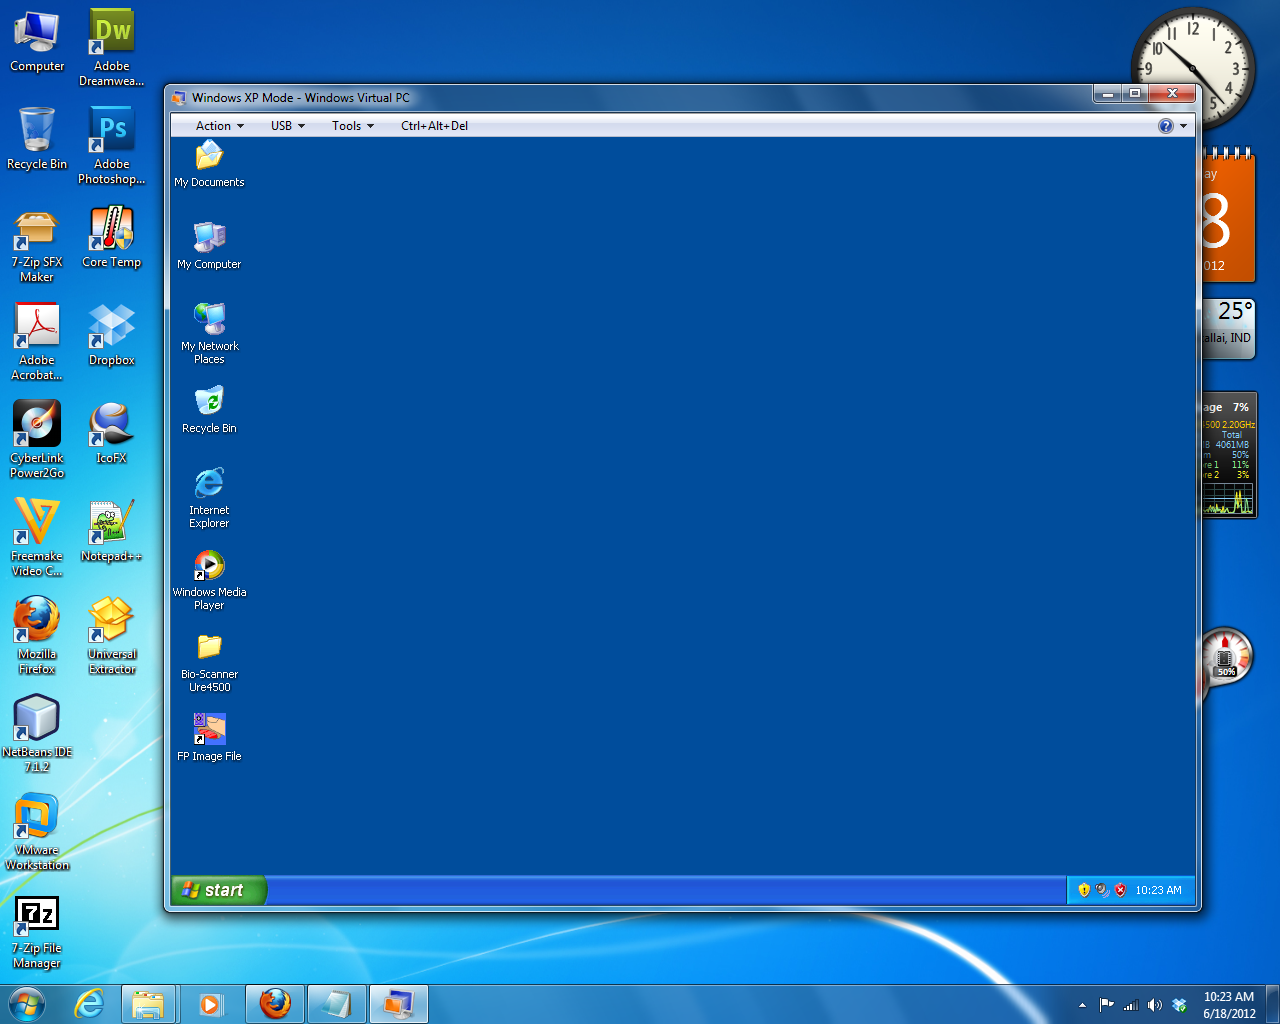 Windows xp mode for windows 7 etds